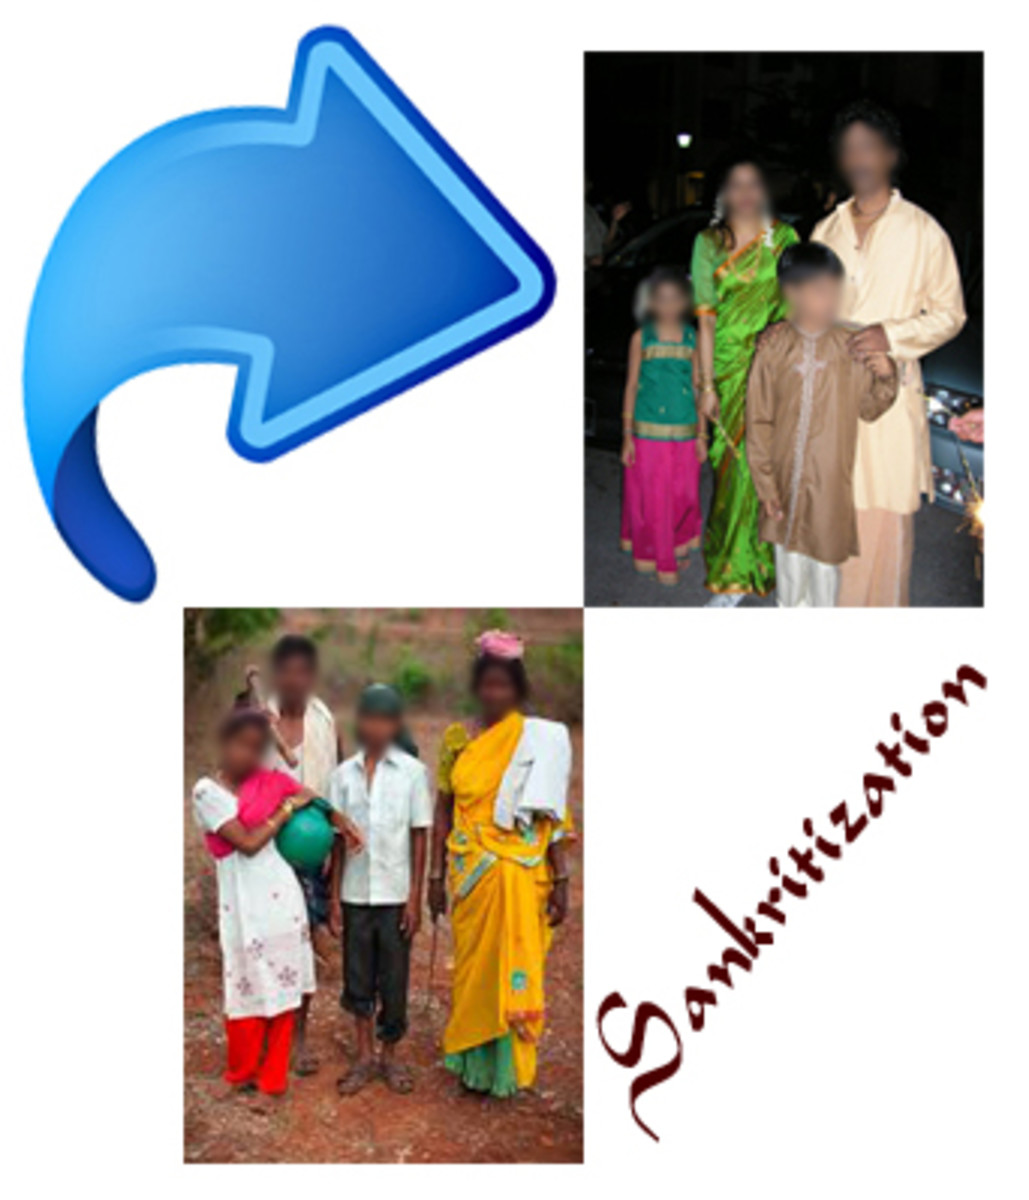 Sanskritization and Westernization